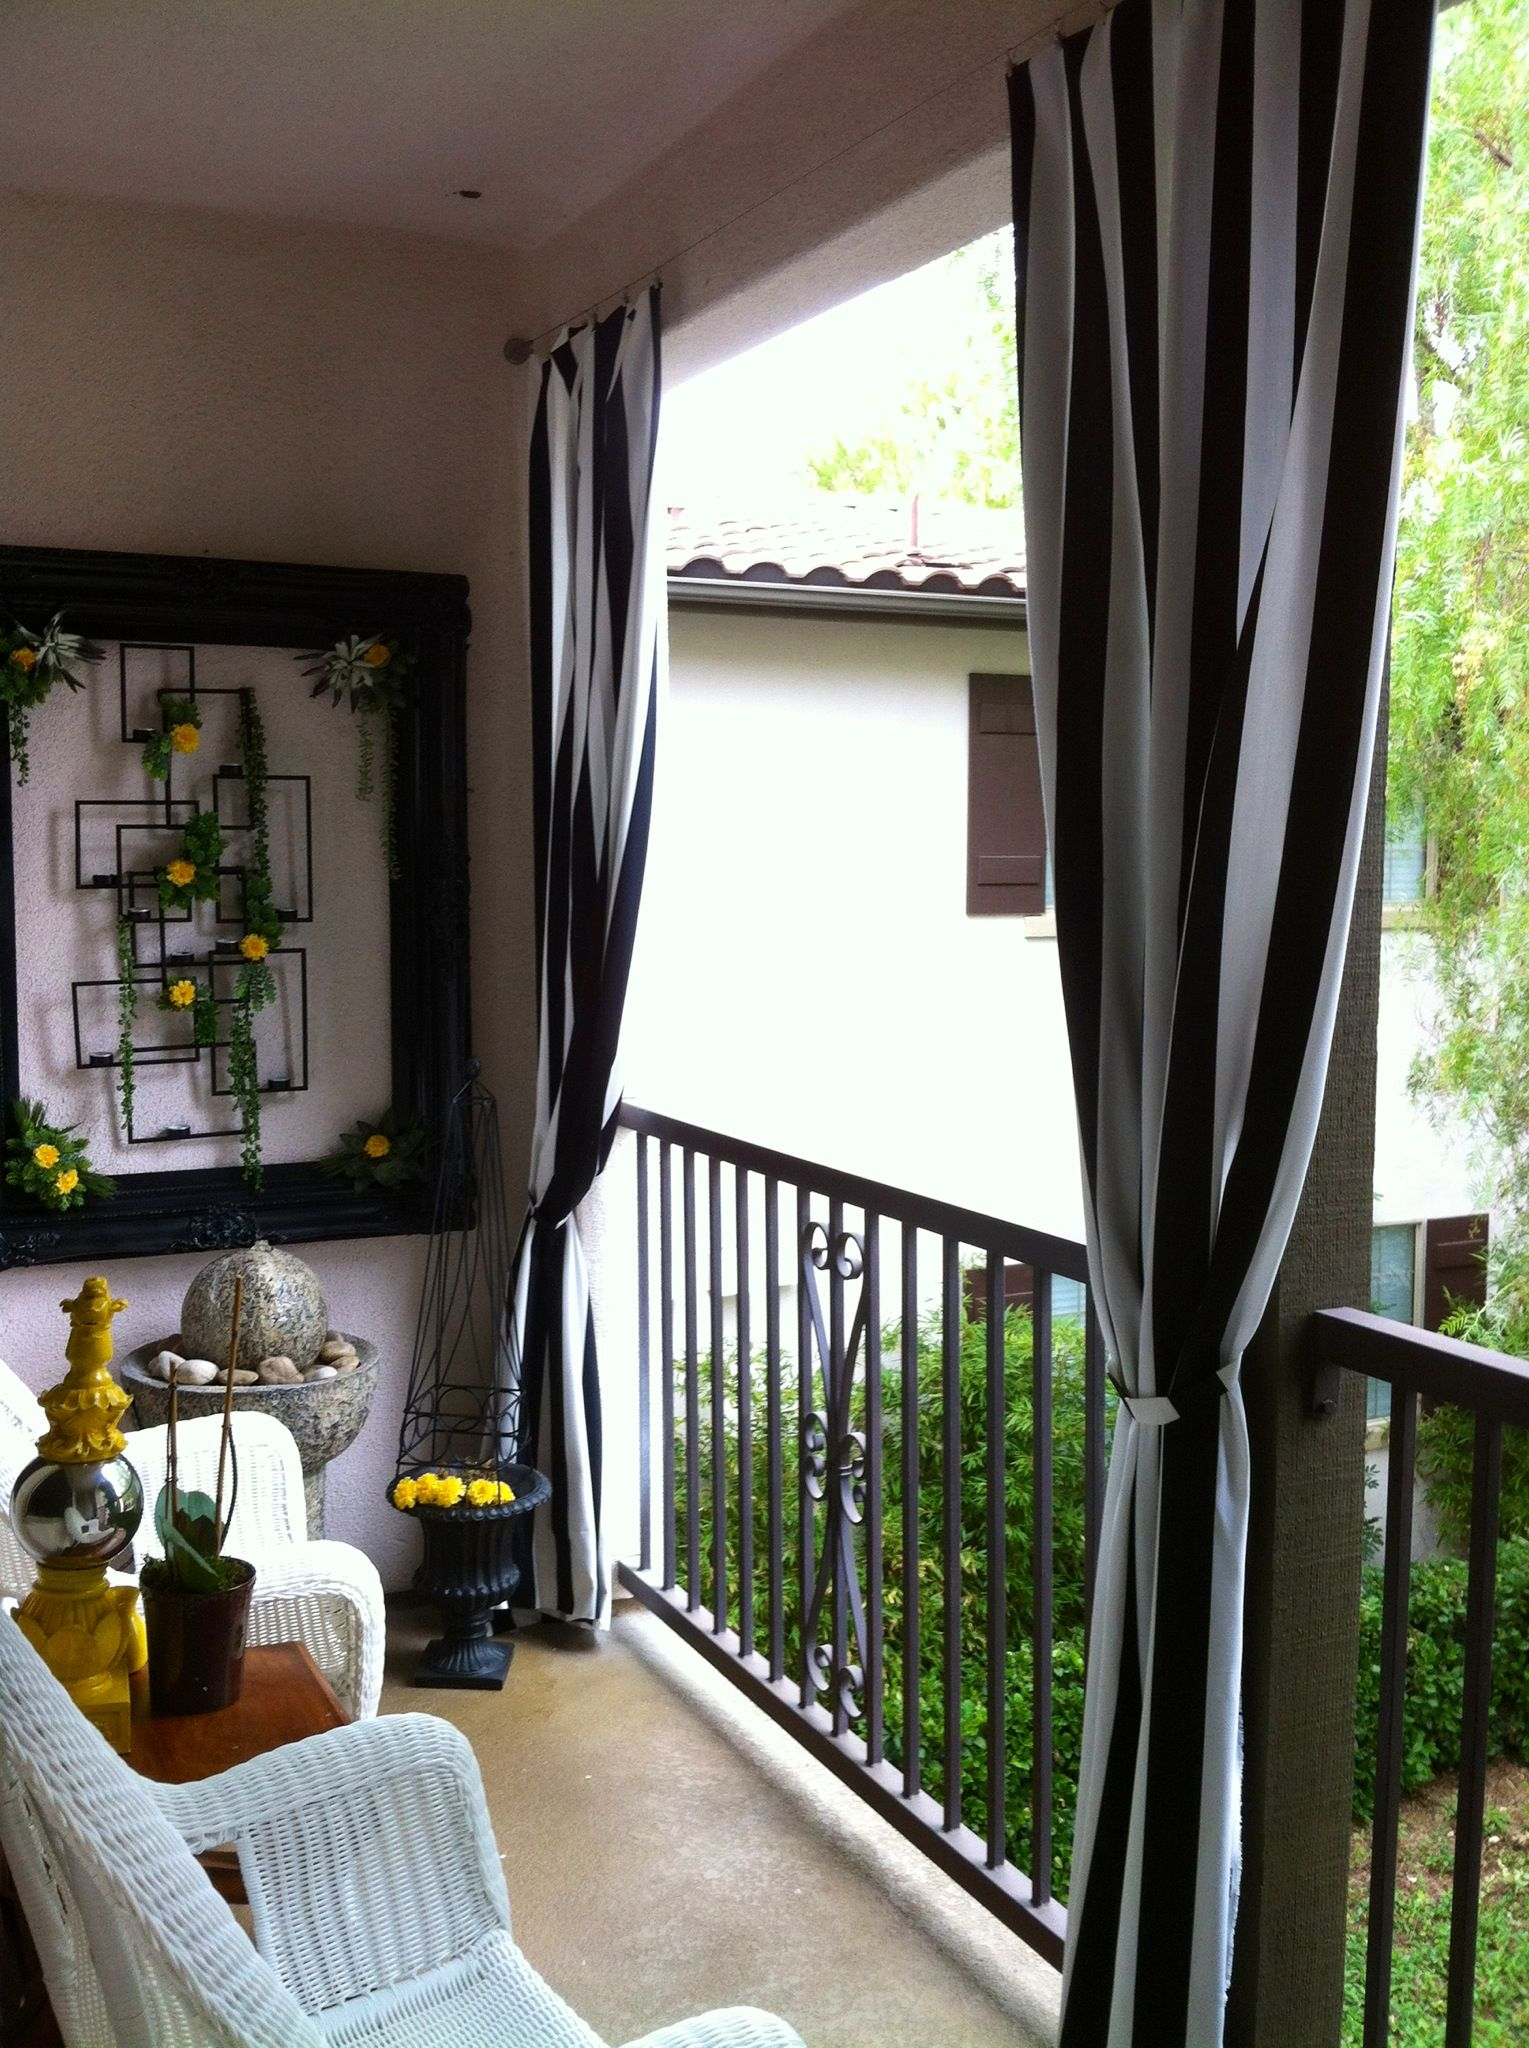 Balcony makeover www.creativetouchdesigns.net | My oasis ...